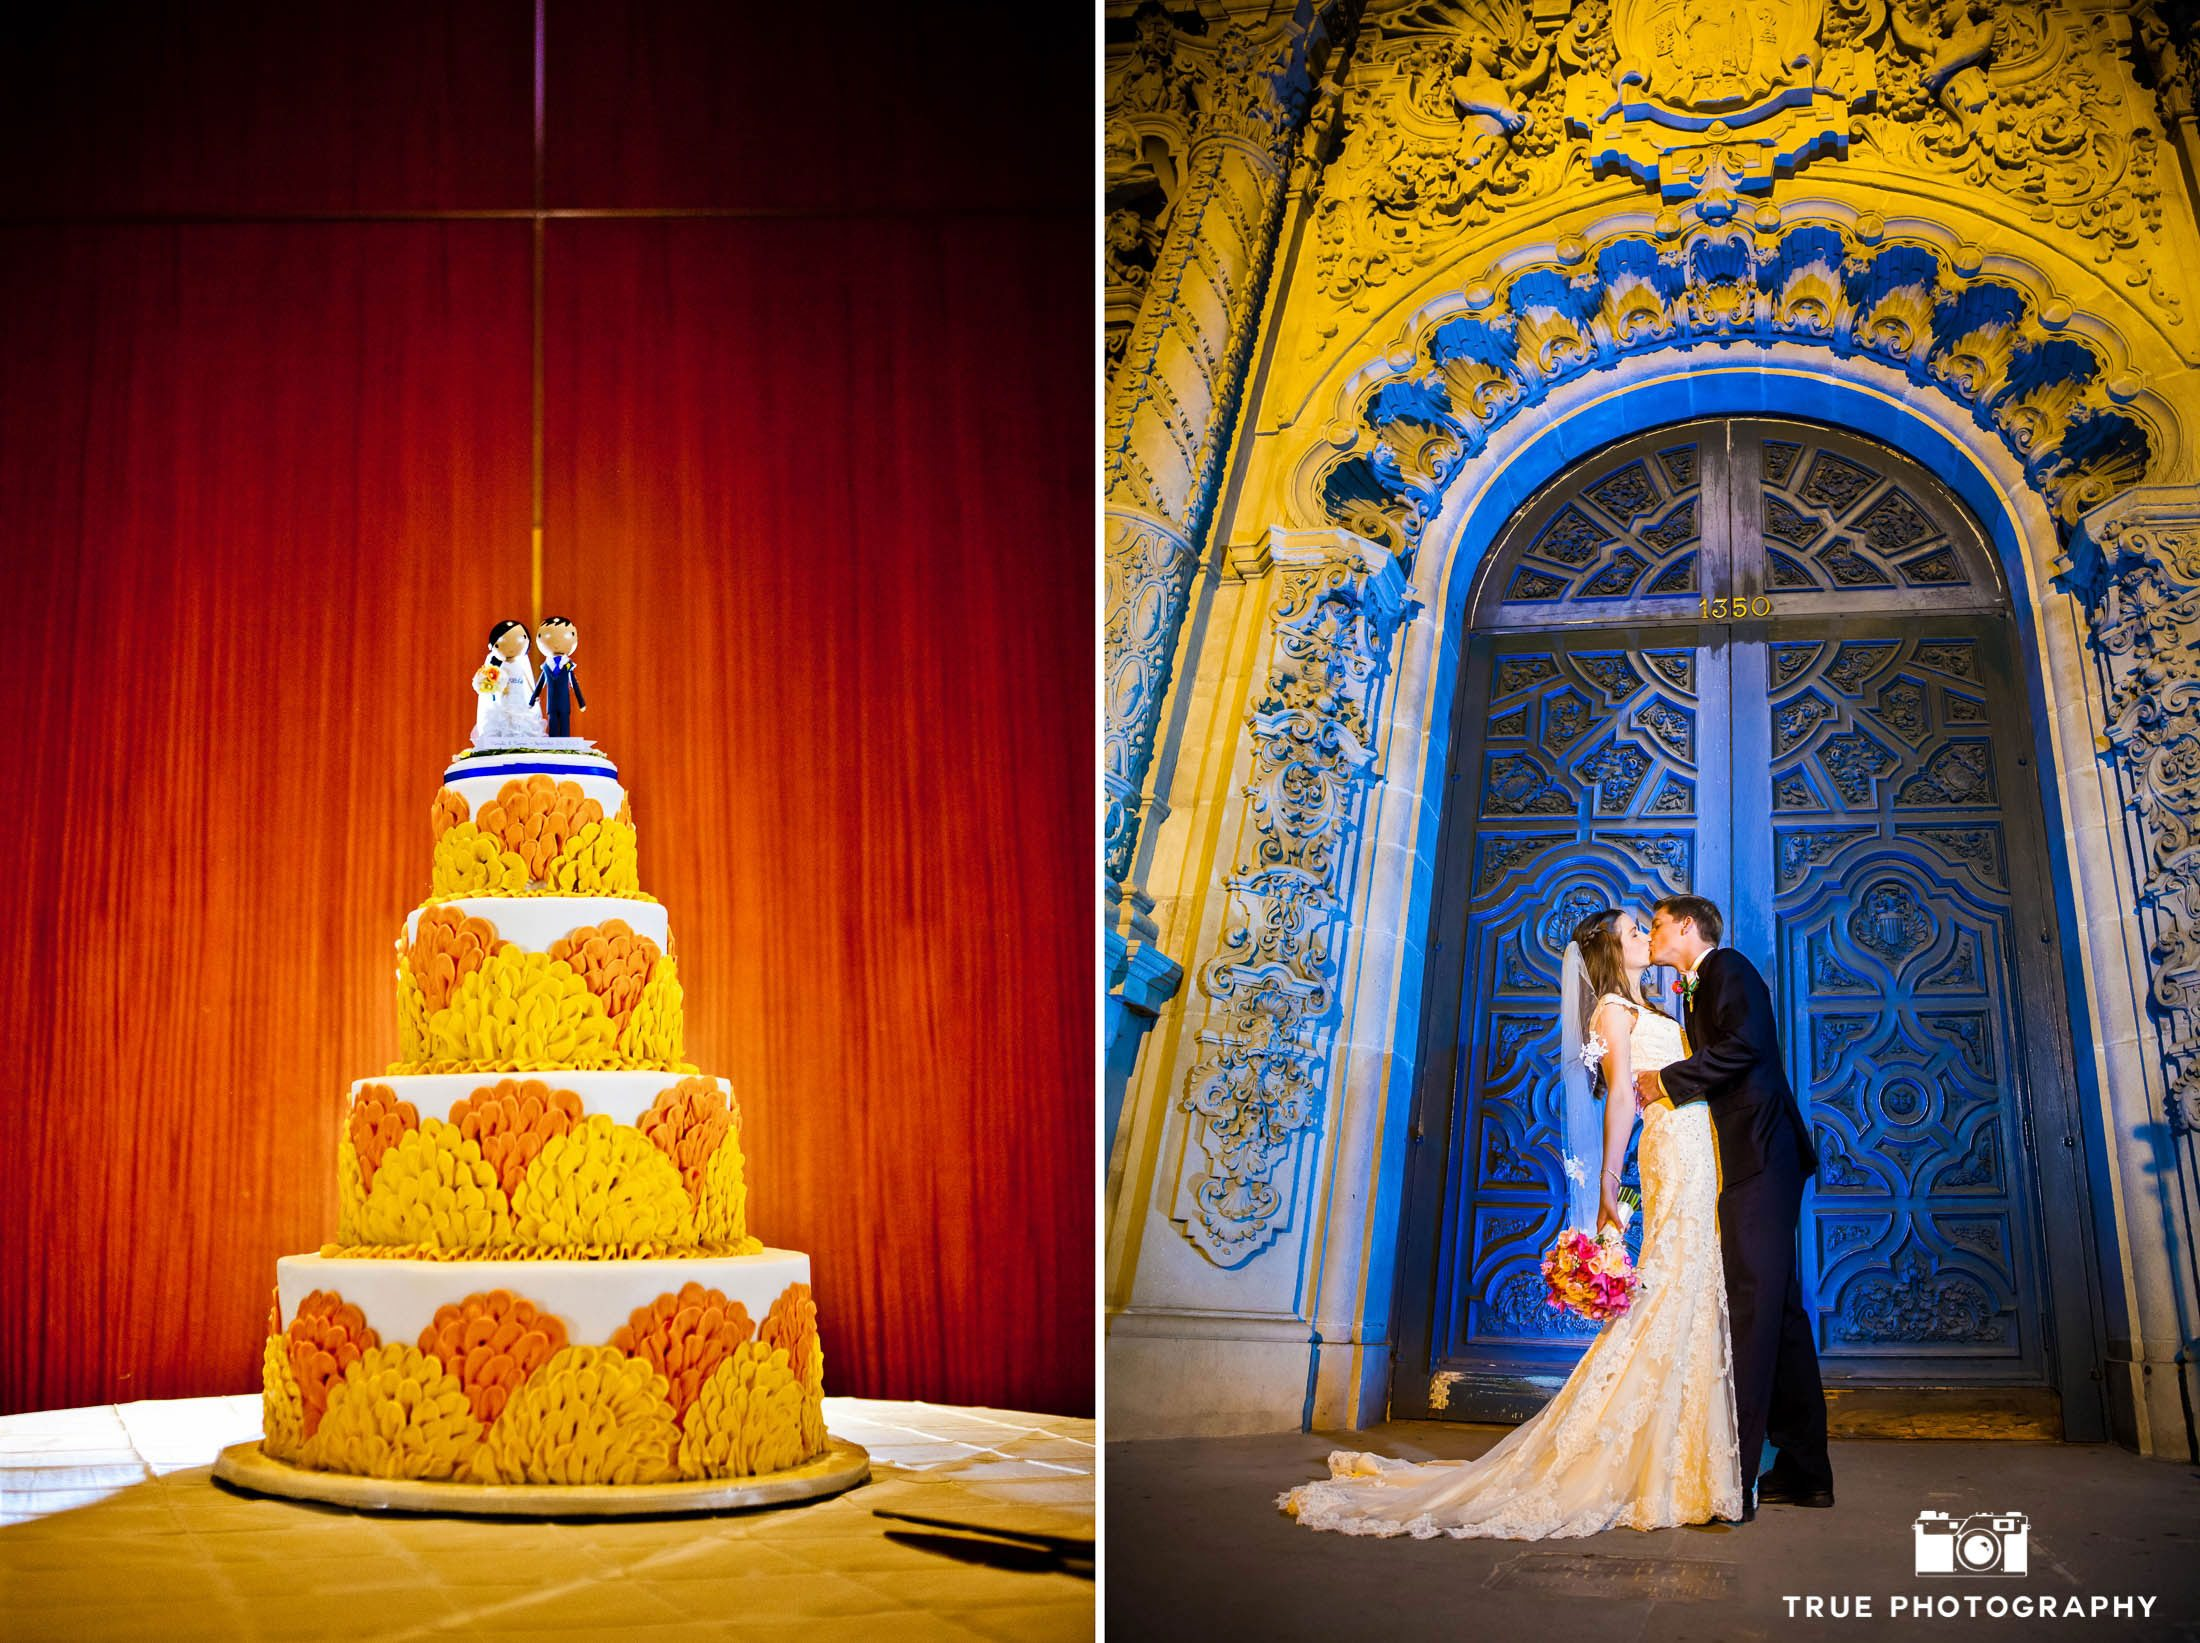 Dramatic orange and blue wedding couple and cake